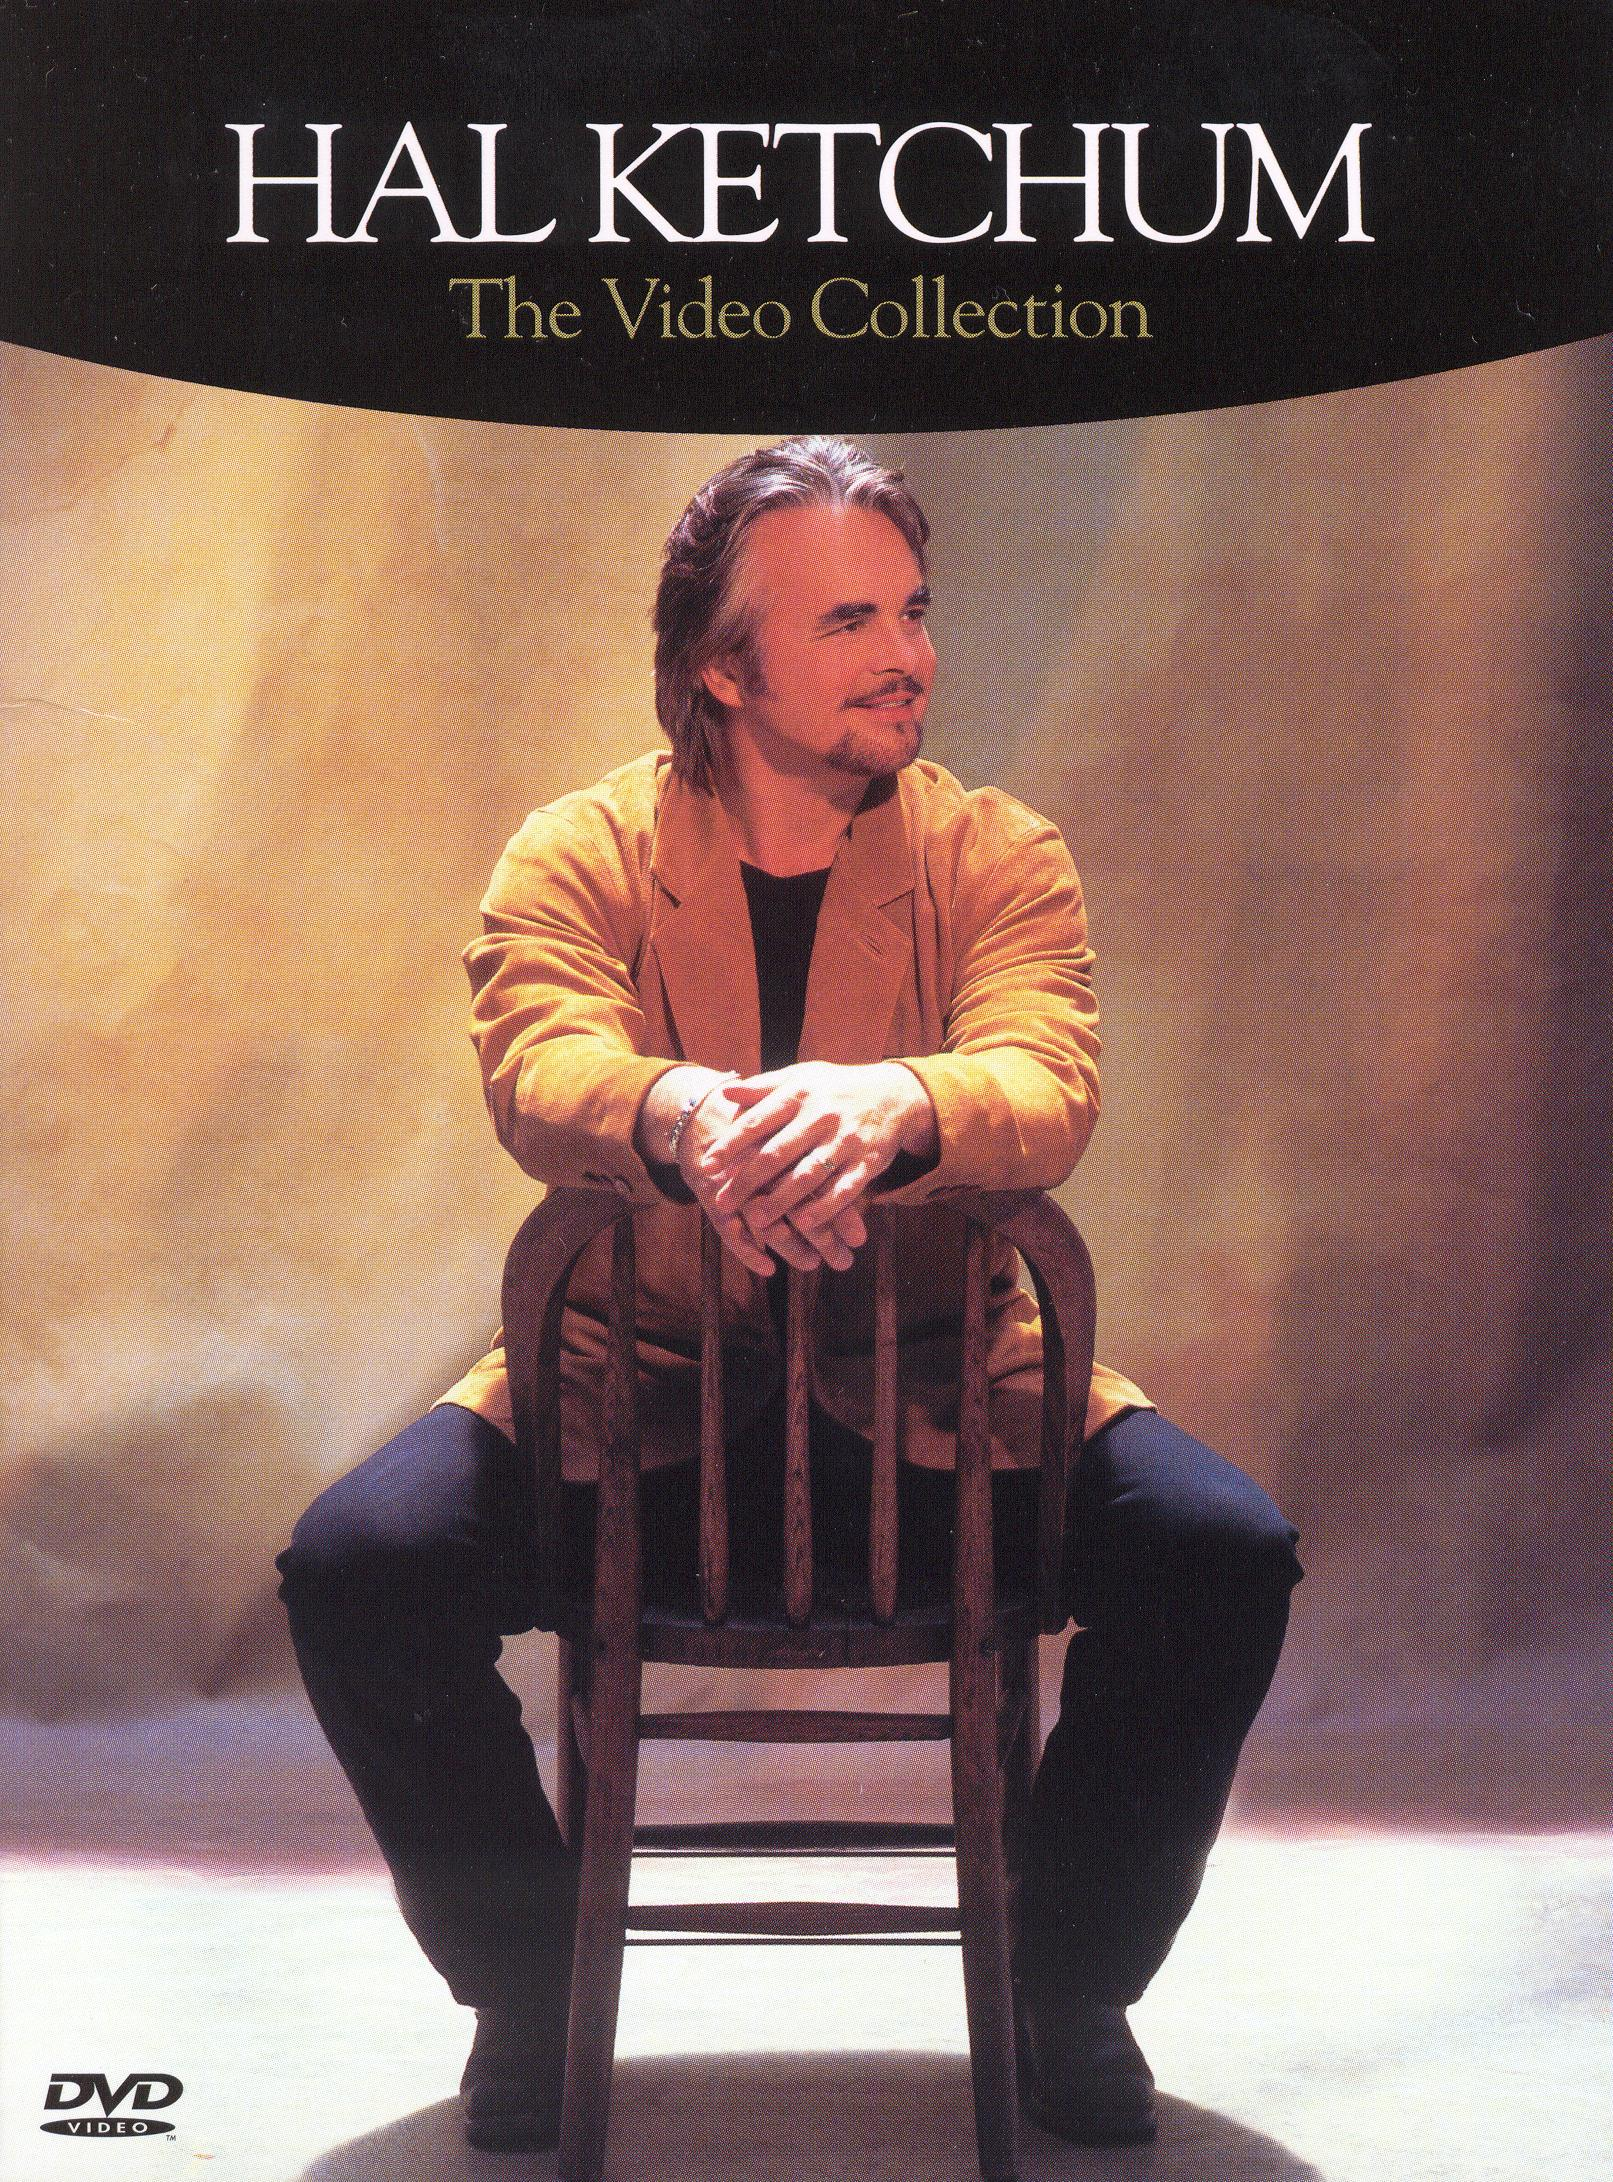 Hal Ketchum: The Video Collection